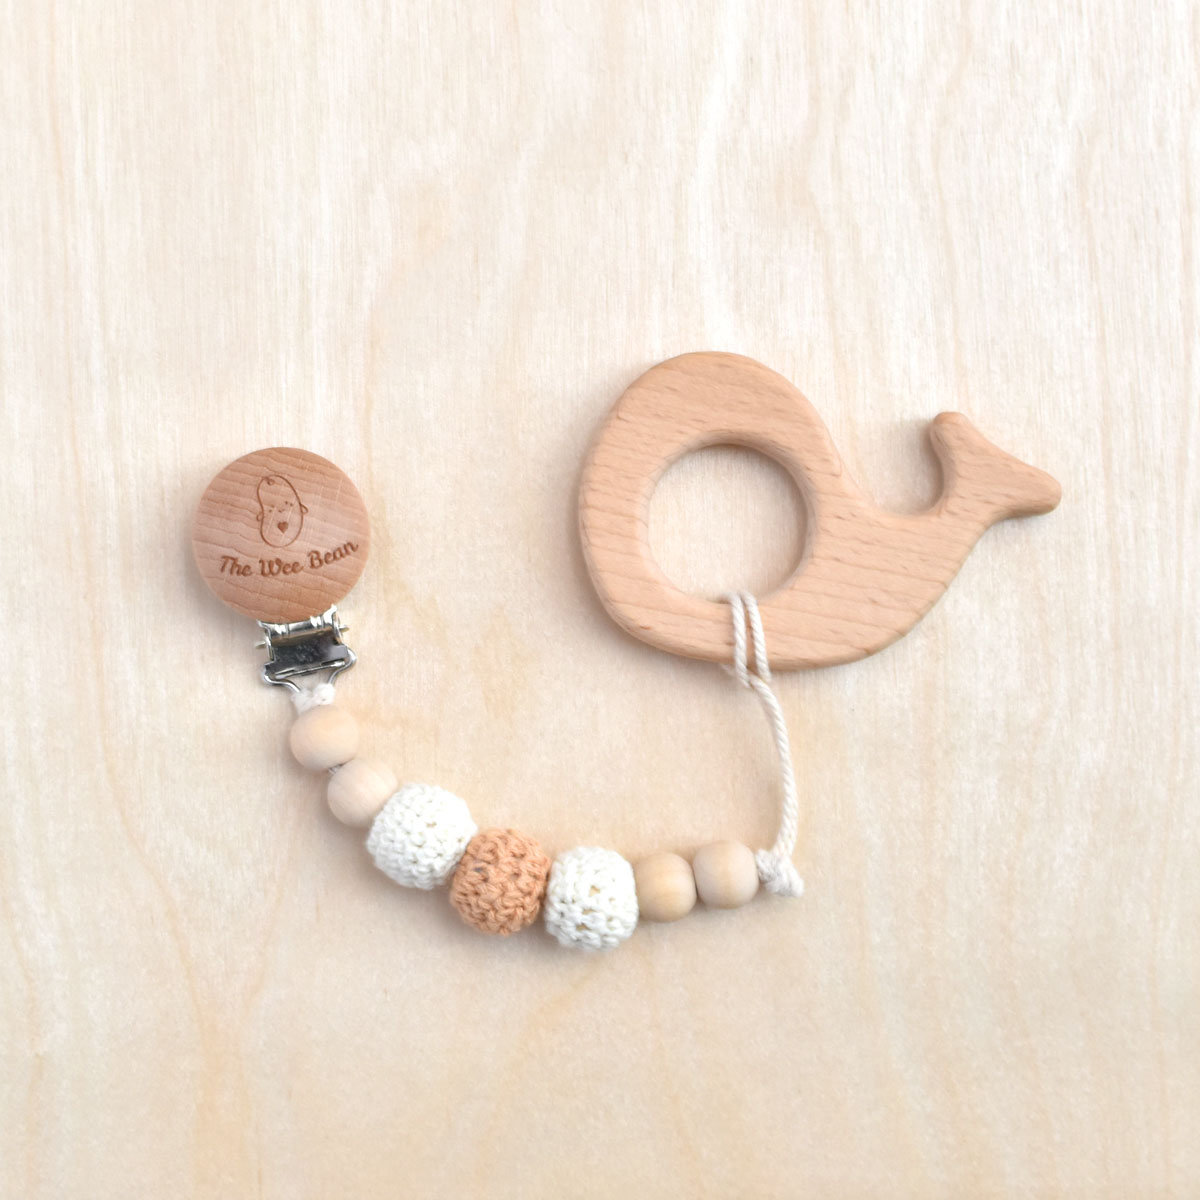 Whale Organic Wood Teether + Pacifier Clip Set (Neutral Brown Color)